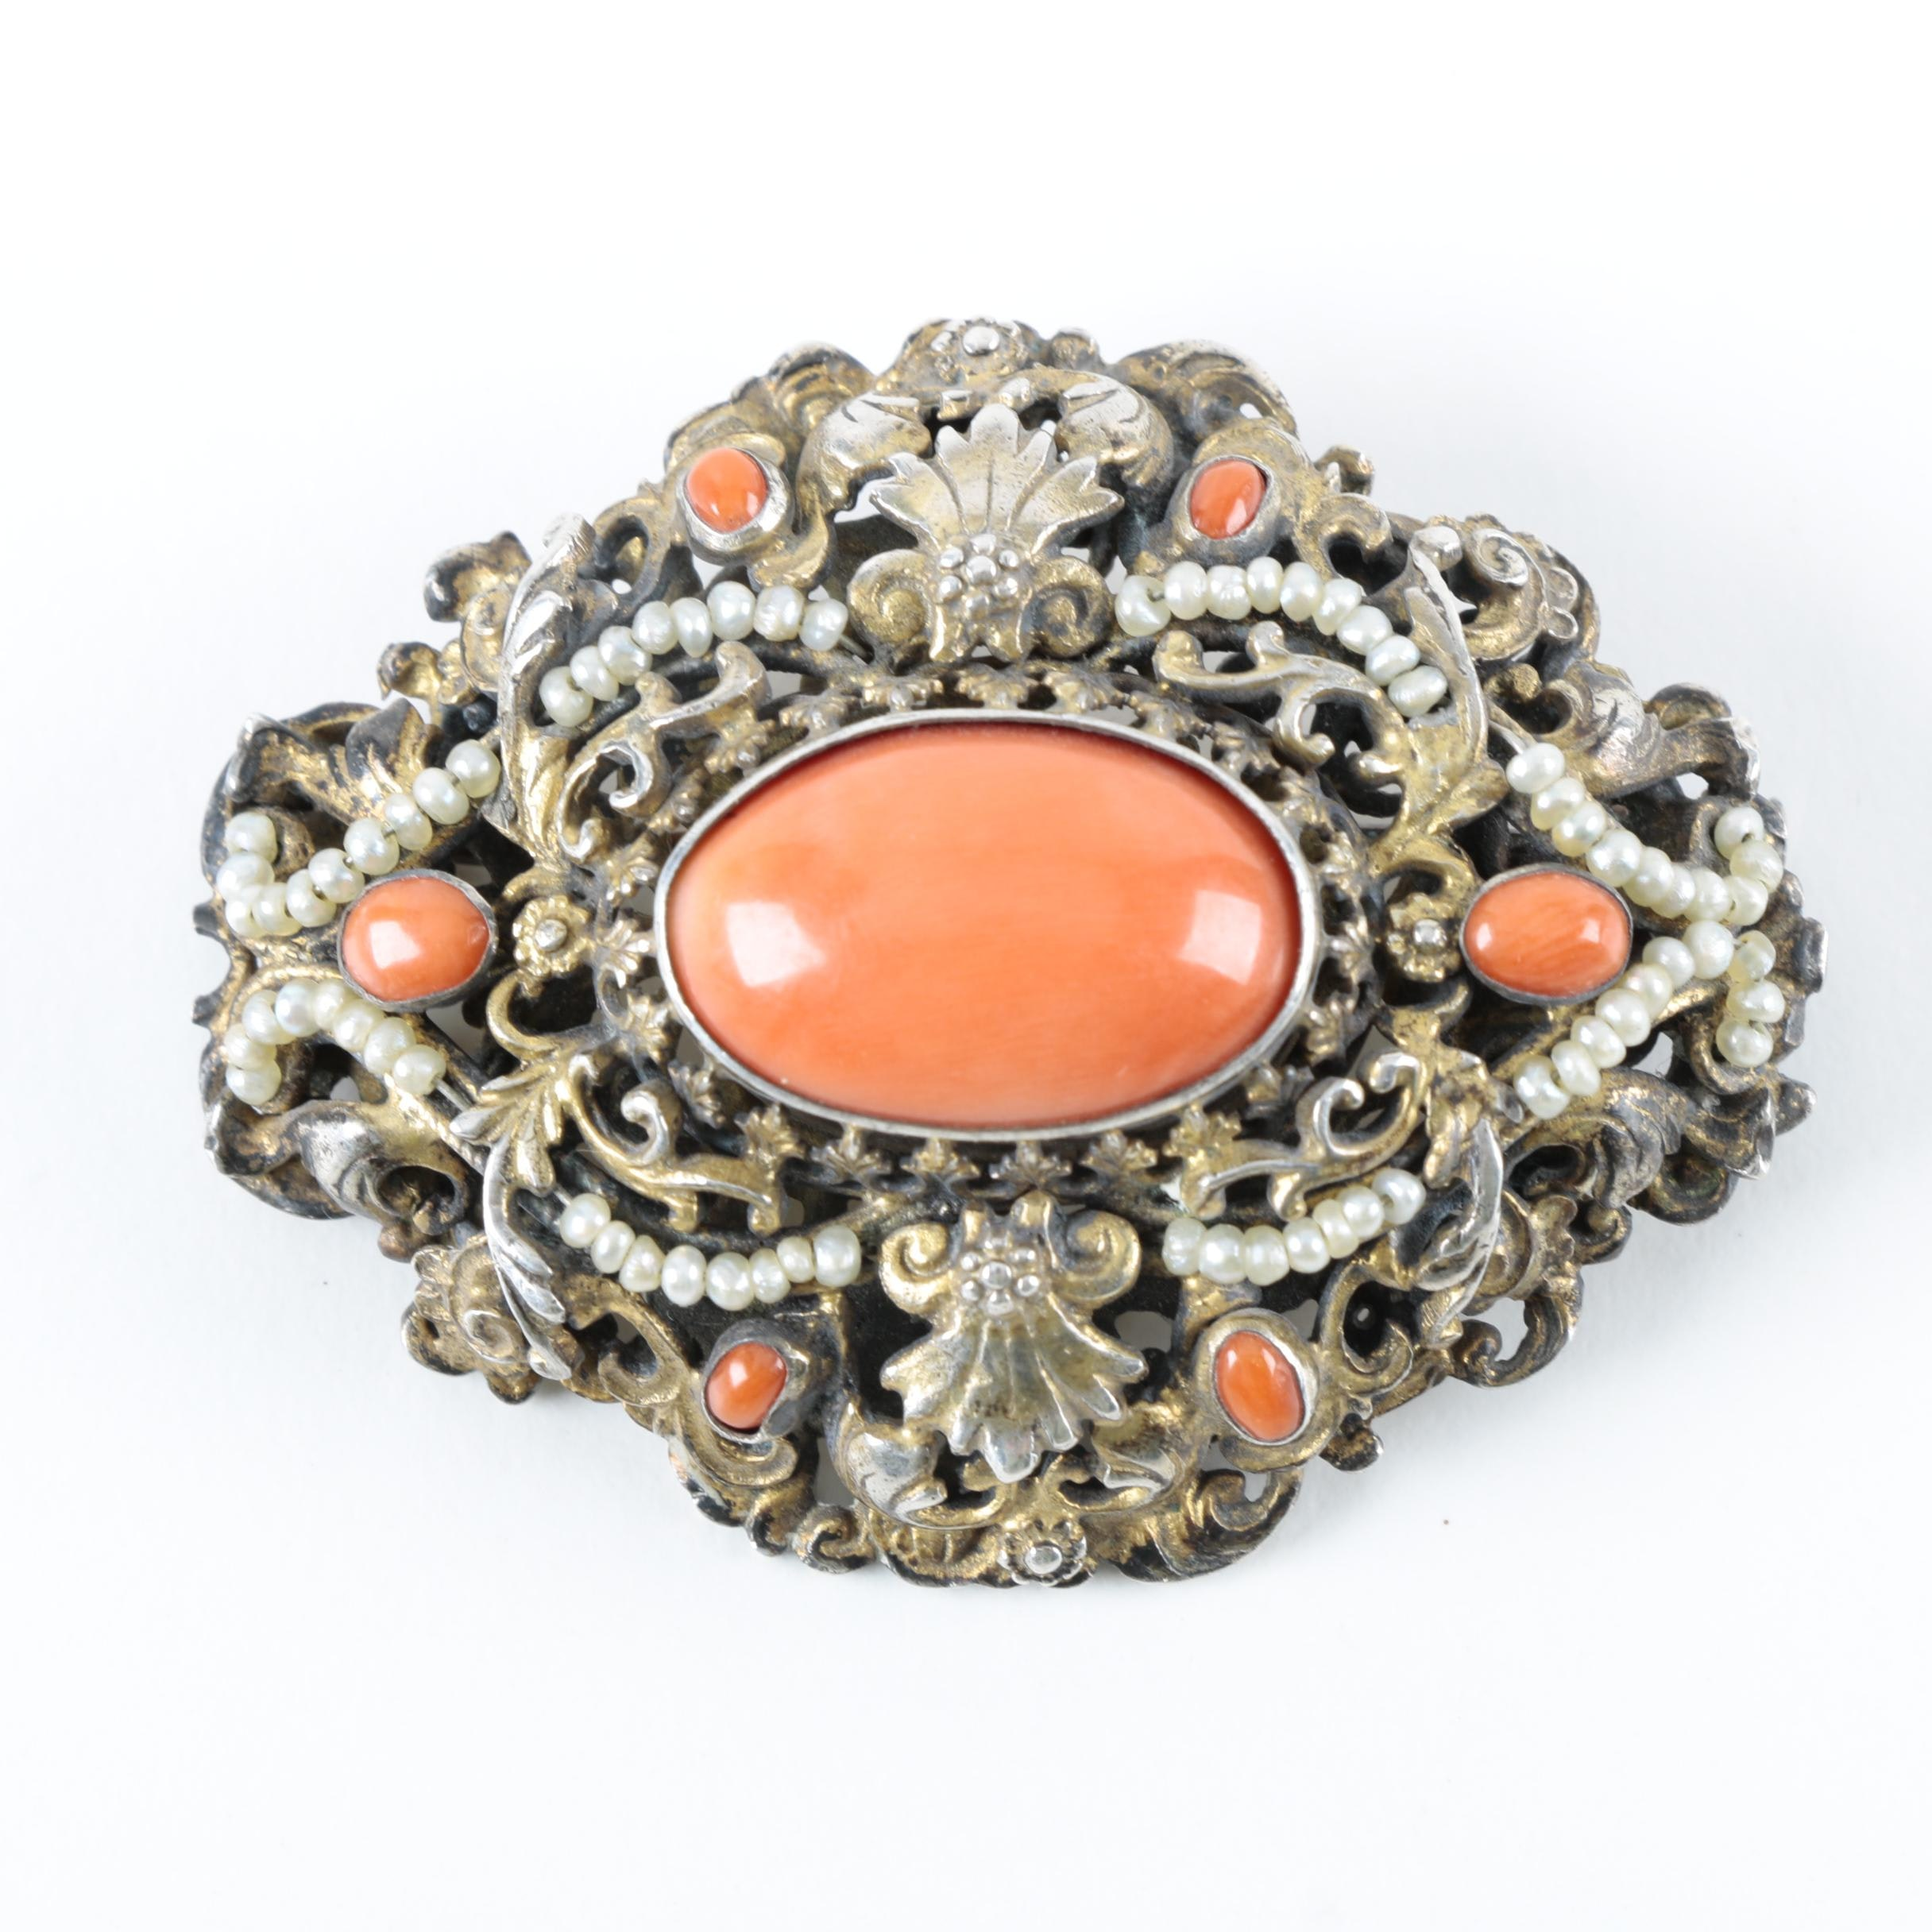 Antique Gold Wash Sterling Silver and Coral Brooch